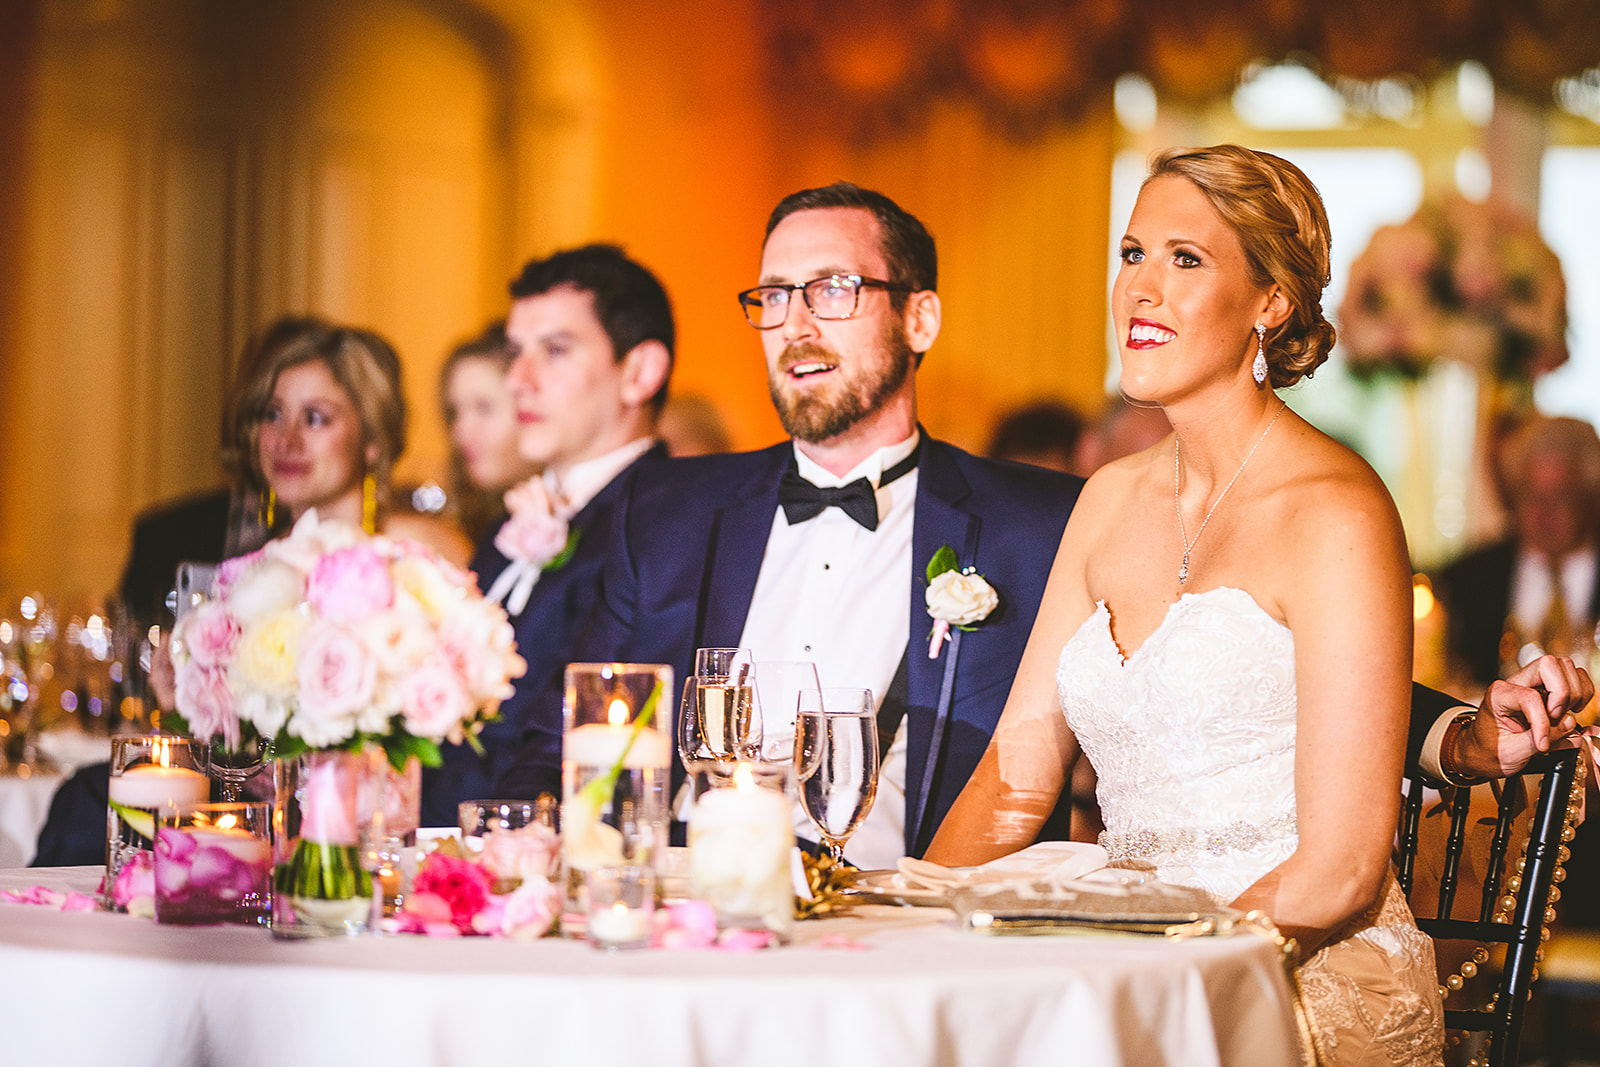 Atelier Ashley Flowers + Sam Hurd Photography + Washington Golf and Country Club + Diamond and Pearl Wedding + sweetheart table + bridal bouquet + floating candles